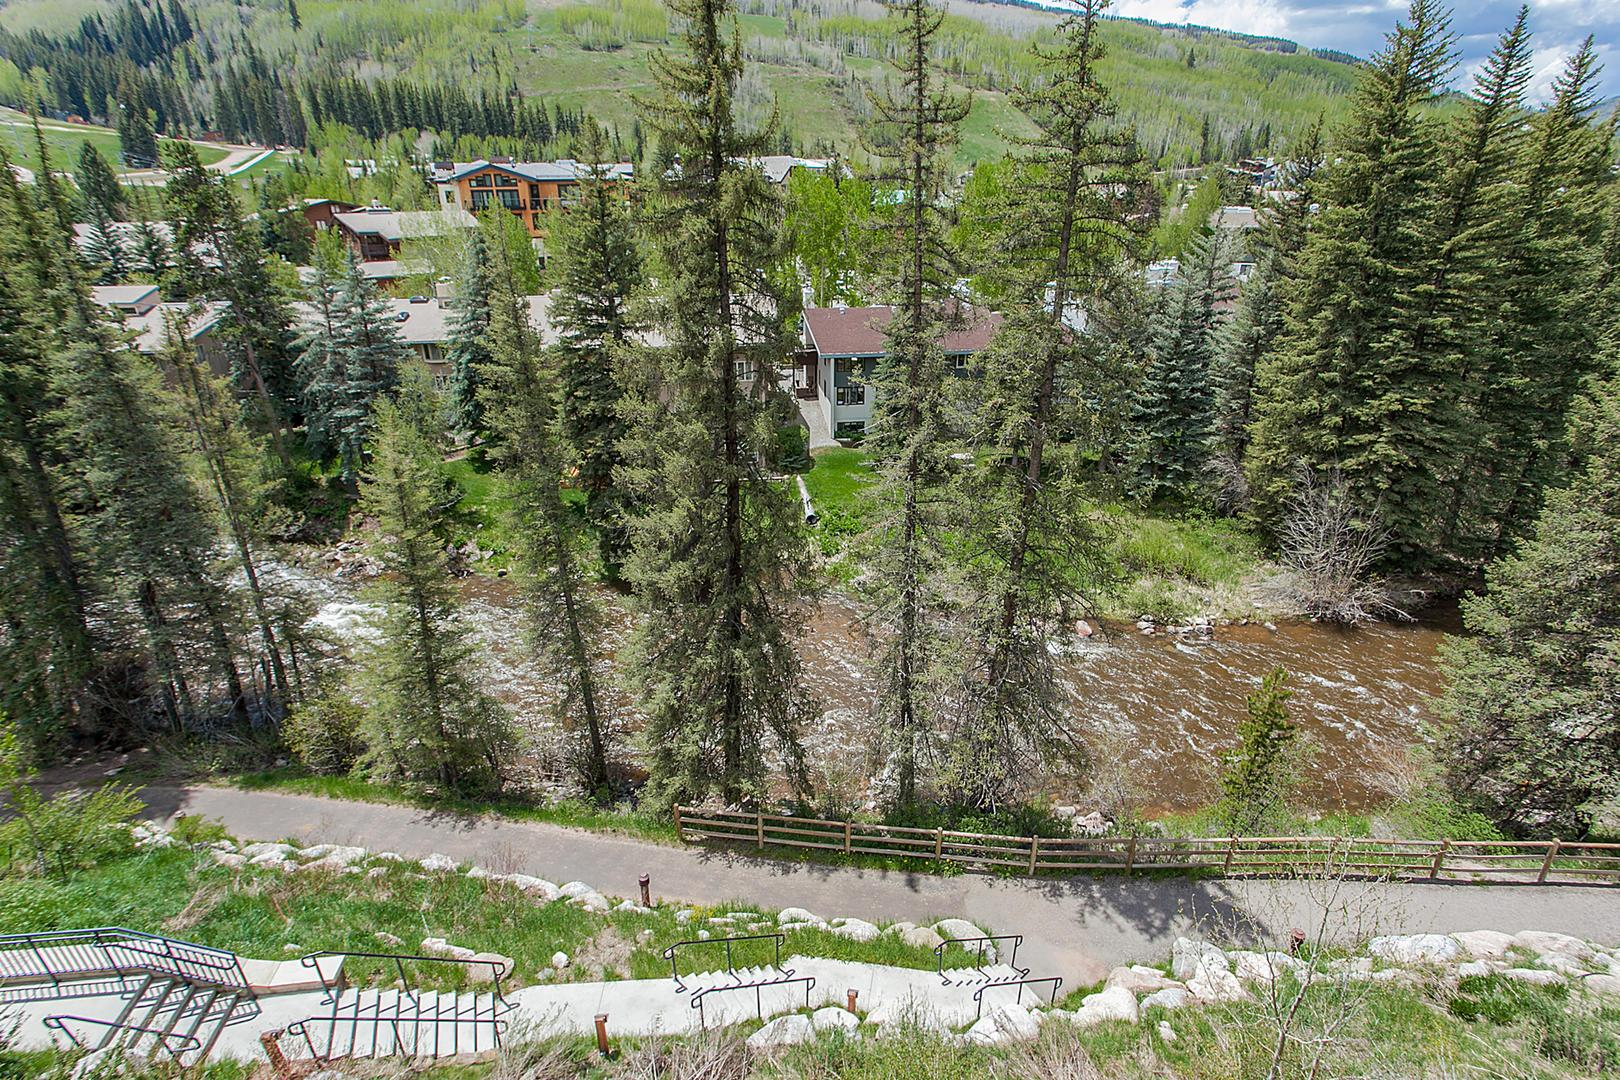 4 Bedroom Condo with Private Hot Tub Views over the top of Vail Village